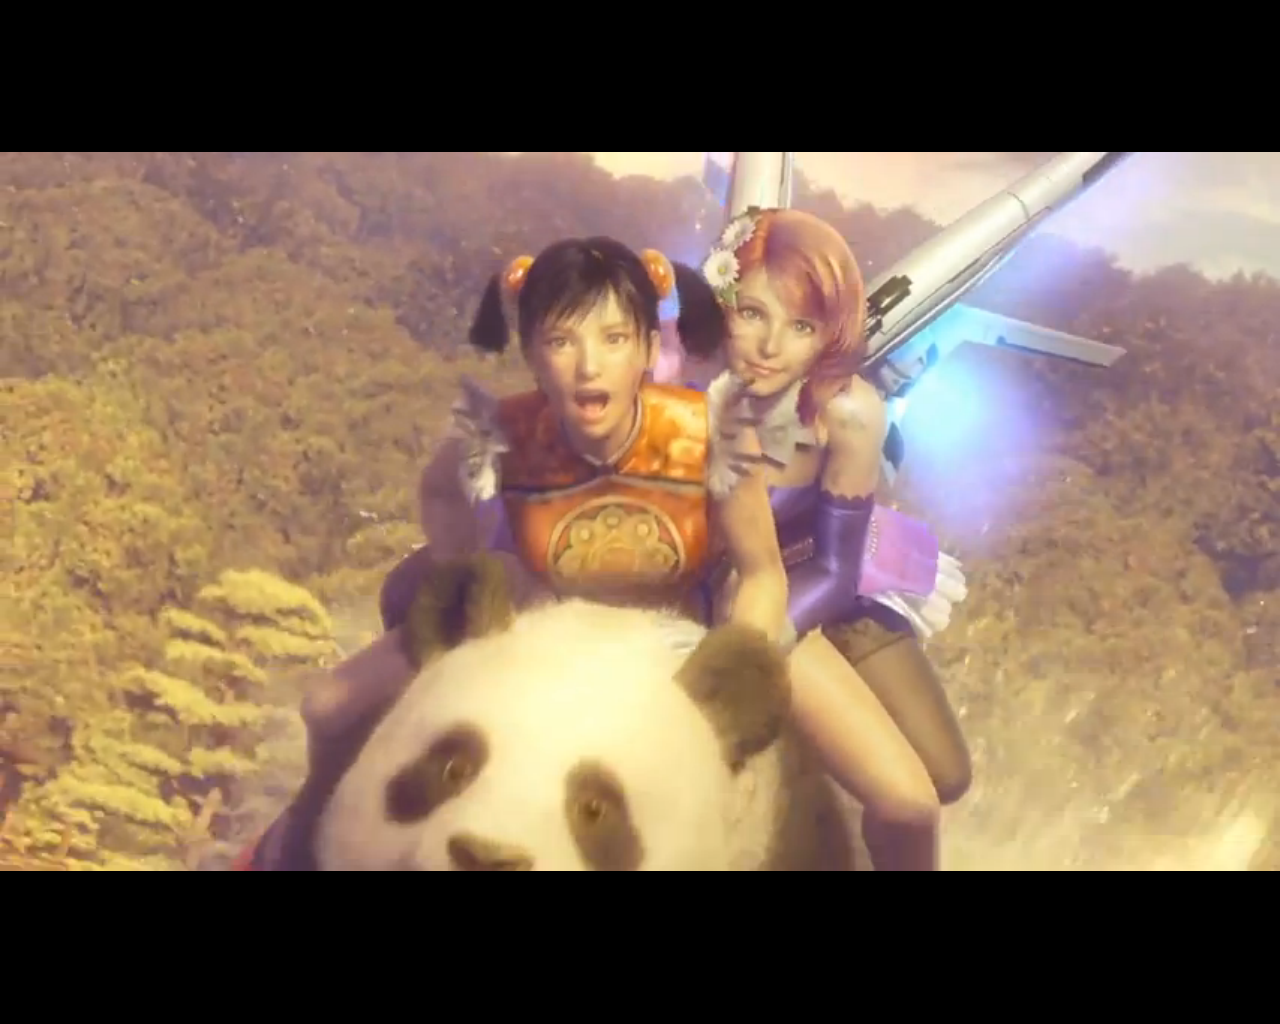 New Cg Tekken Movie Looks Serious And Beautiful Unlike The Live Action Adaptation